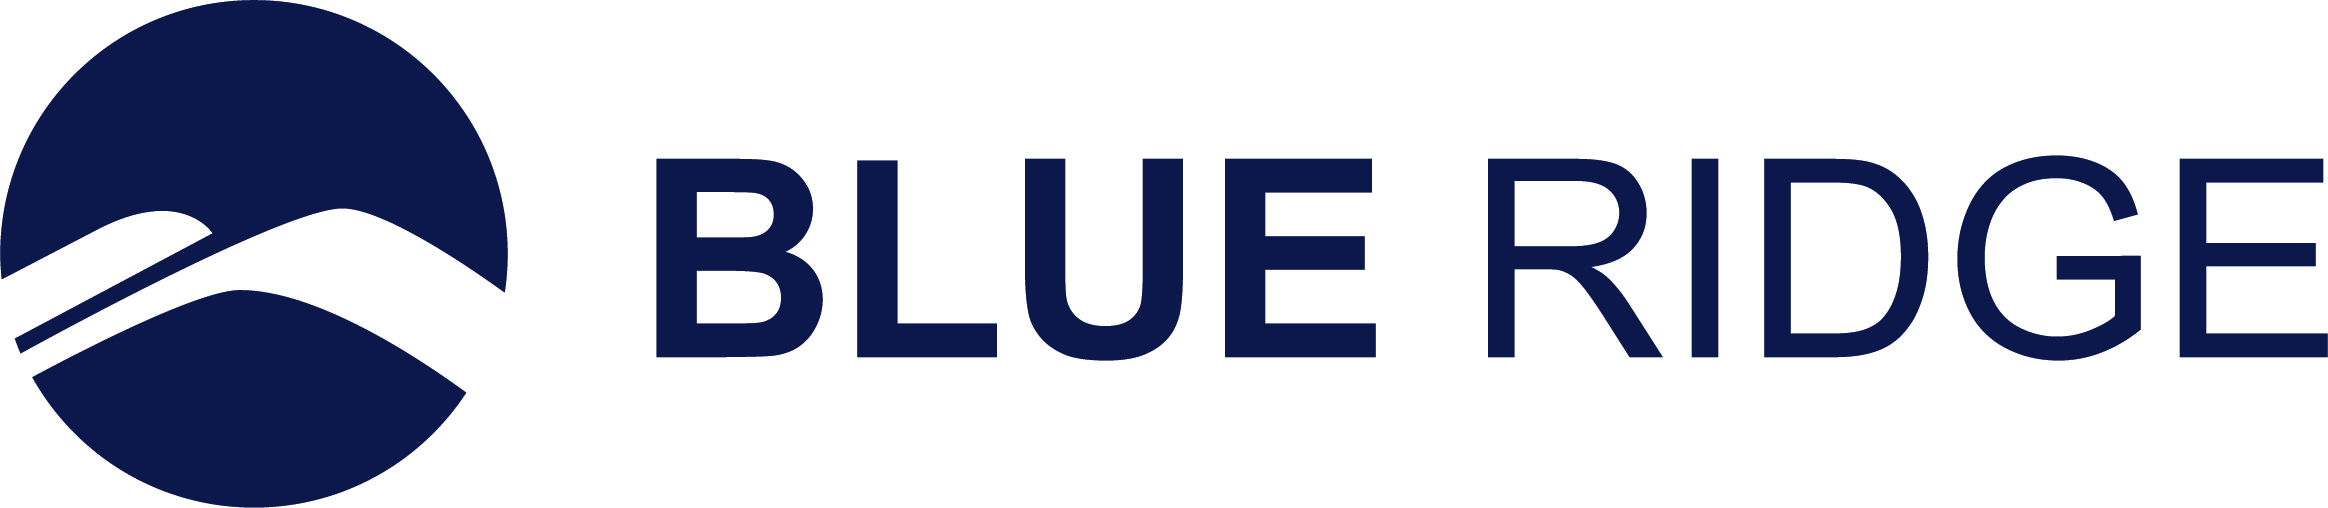 Next Month Blue Ridge BLUPRINT Virtual Conference Will Take Place: Registration Open Now